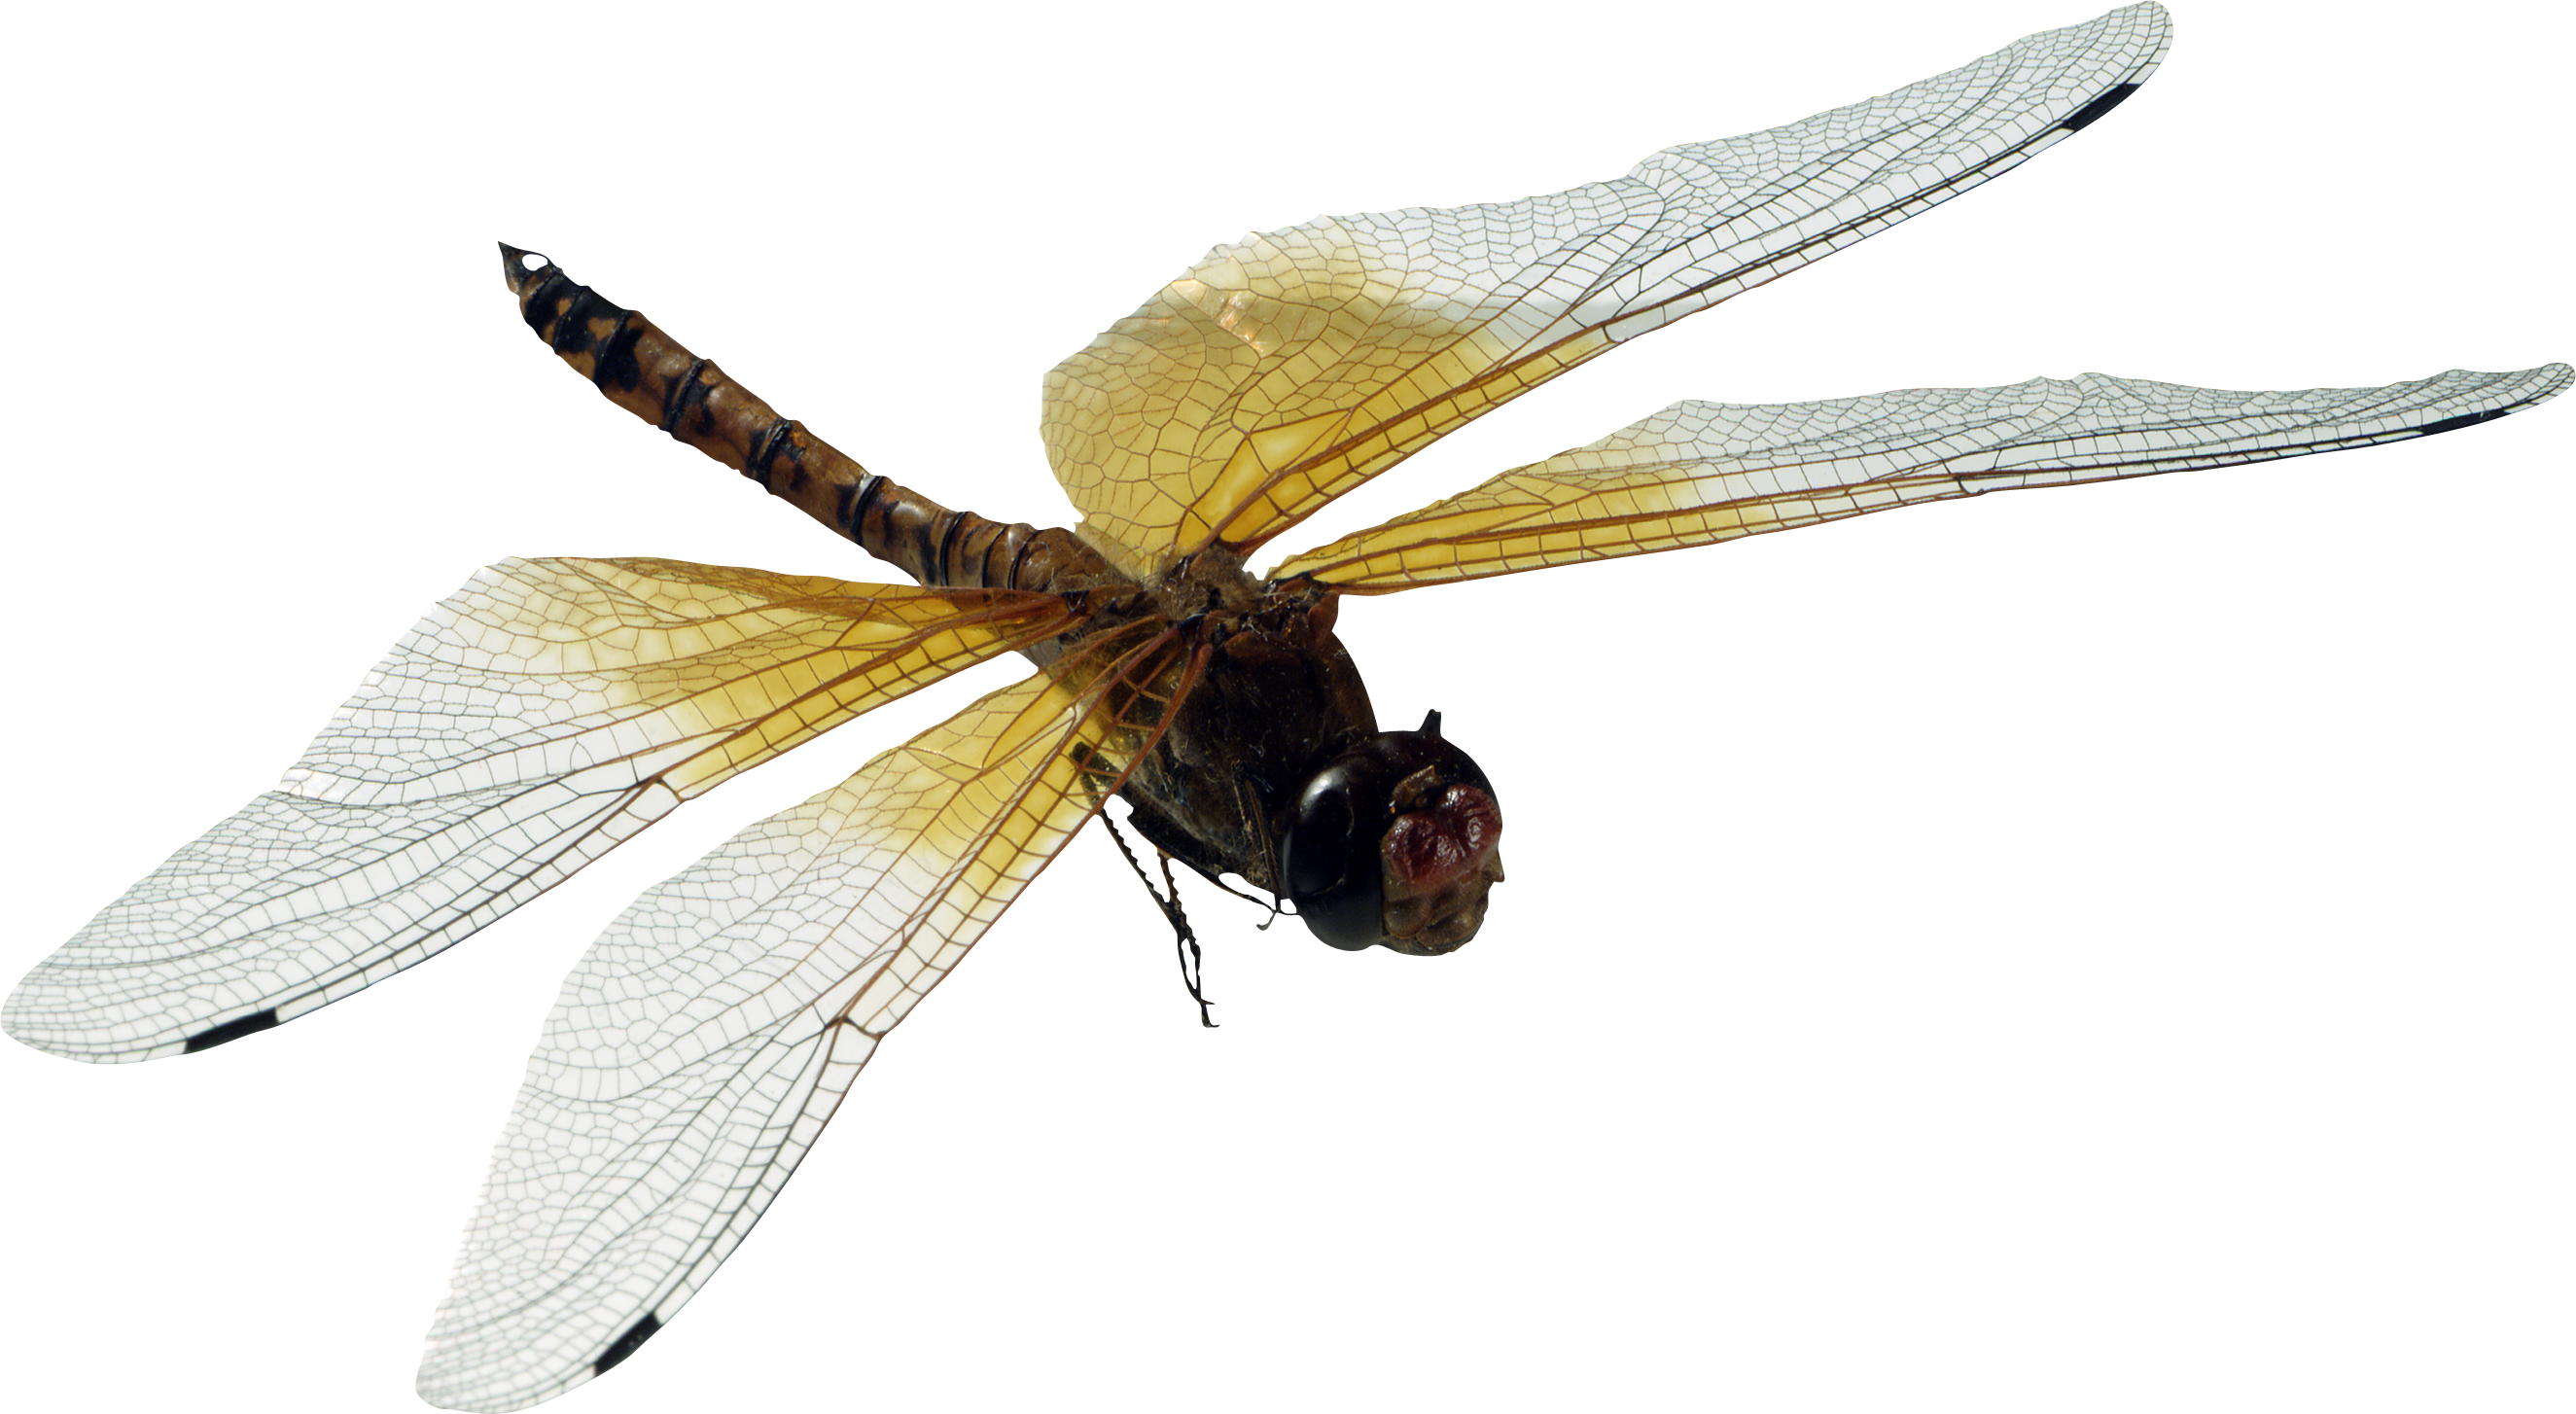 Dragonfly Png Image Dragonfly Insects Animals